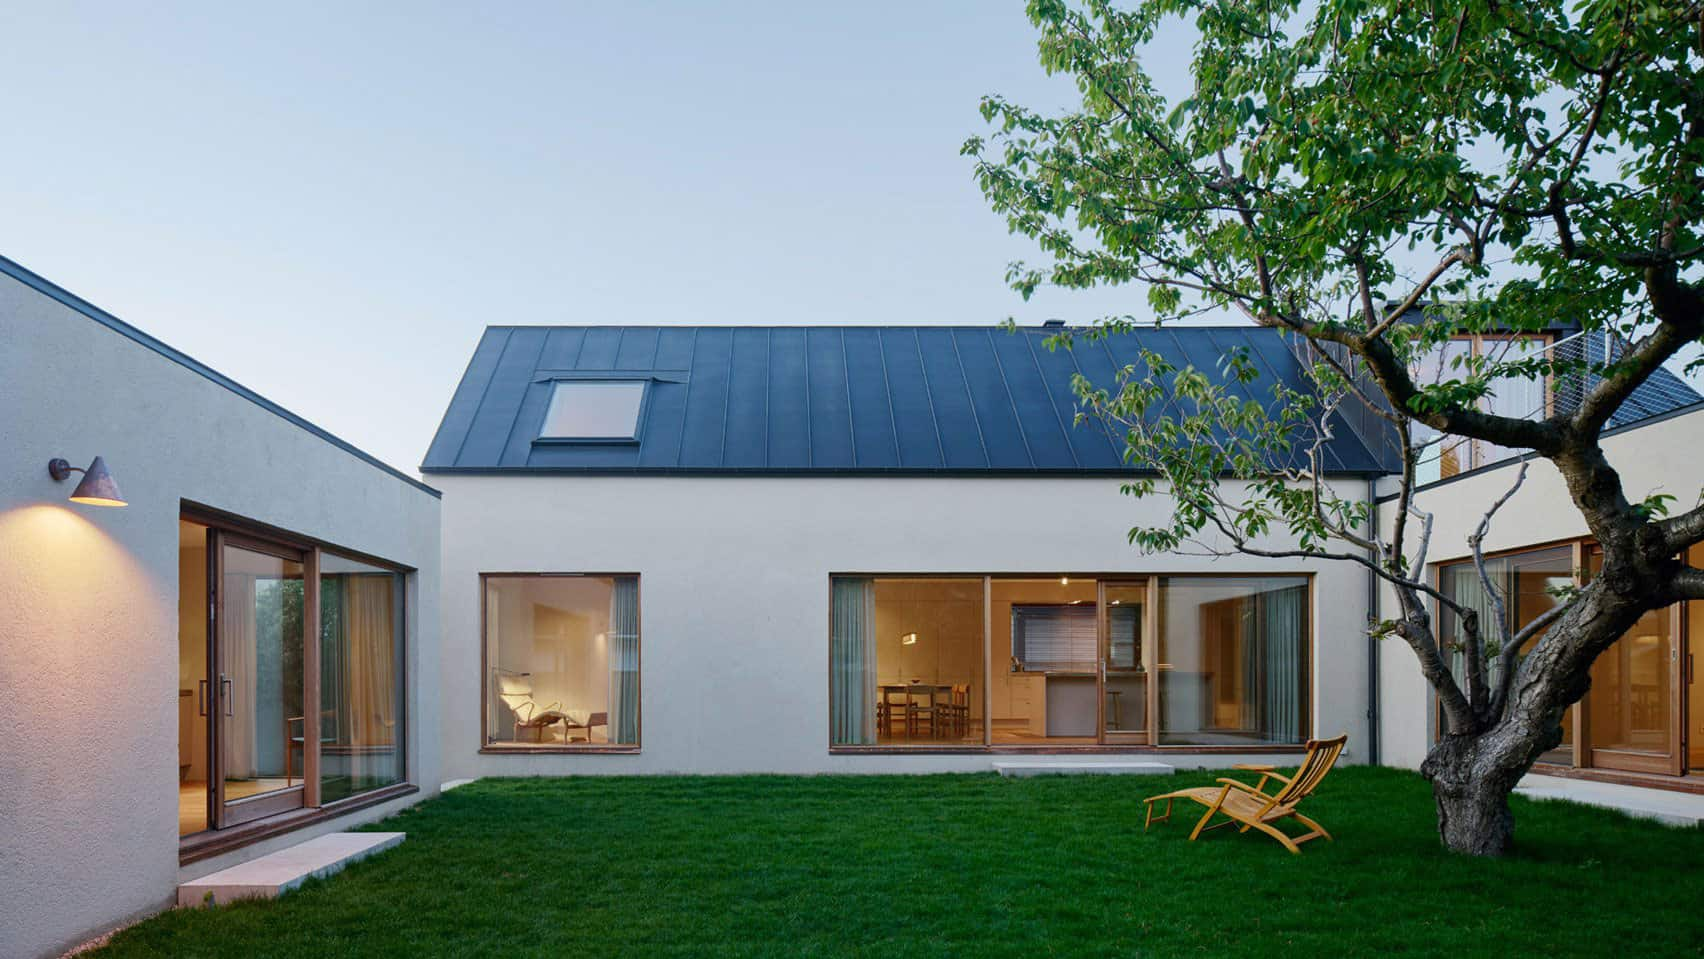 Swedish coastal village designed by maka arkitektur for Minimalist house with courtyard